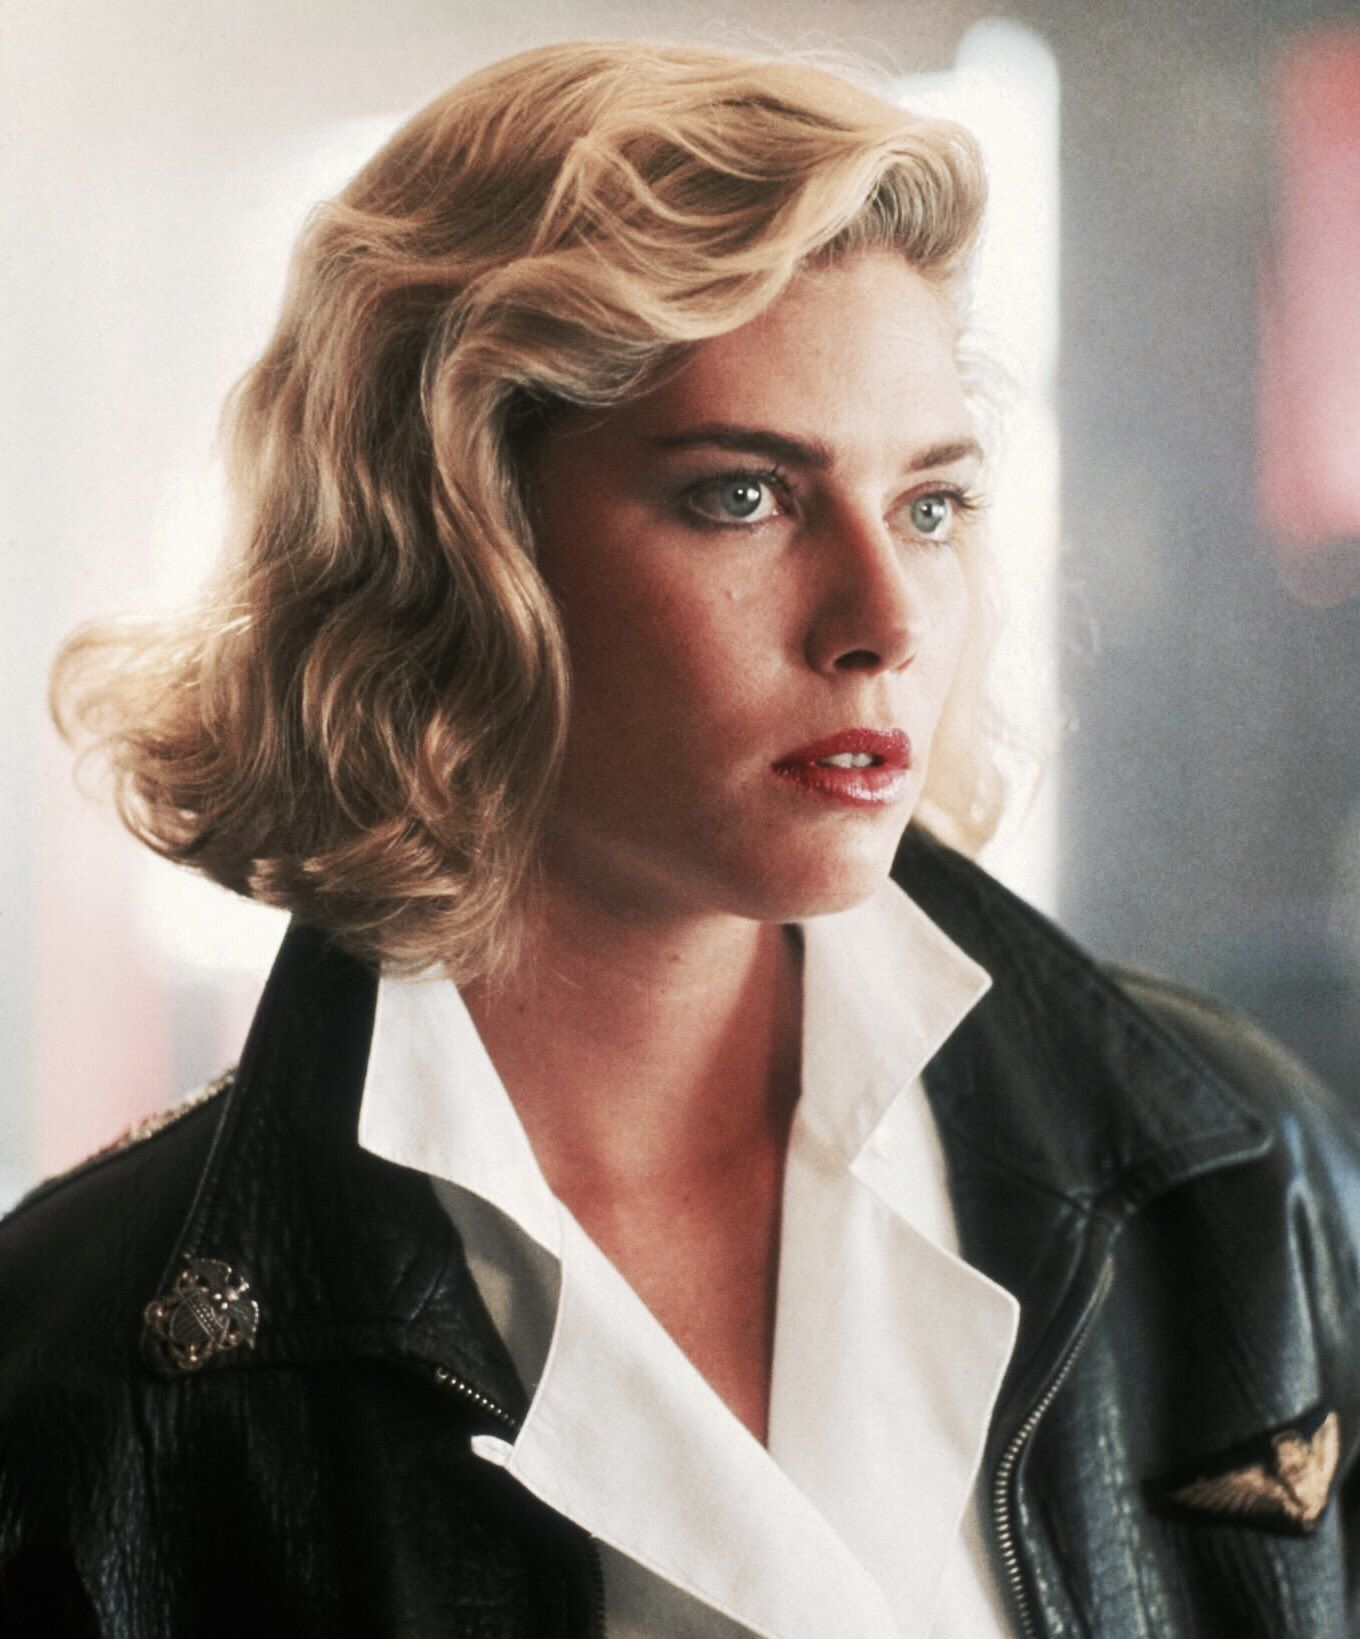 Kelly McGillis | Actrices, Chicas guapas, Chicas